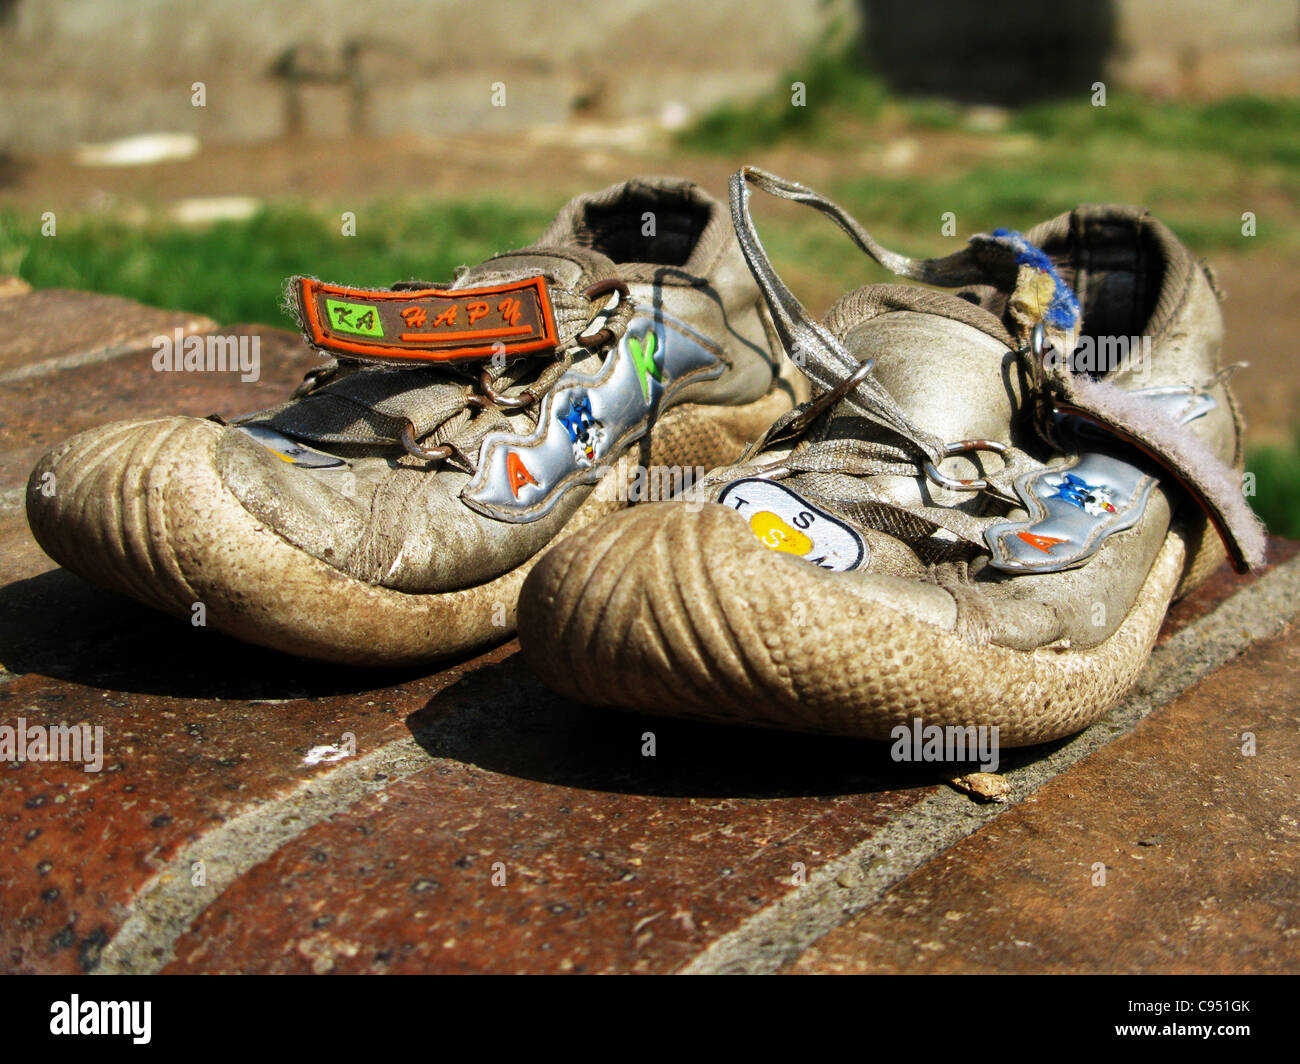 Pair of abandoned children's shoes - Stock Image